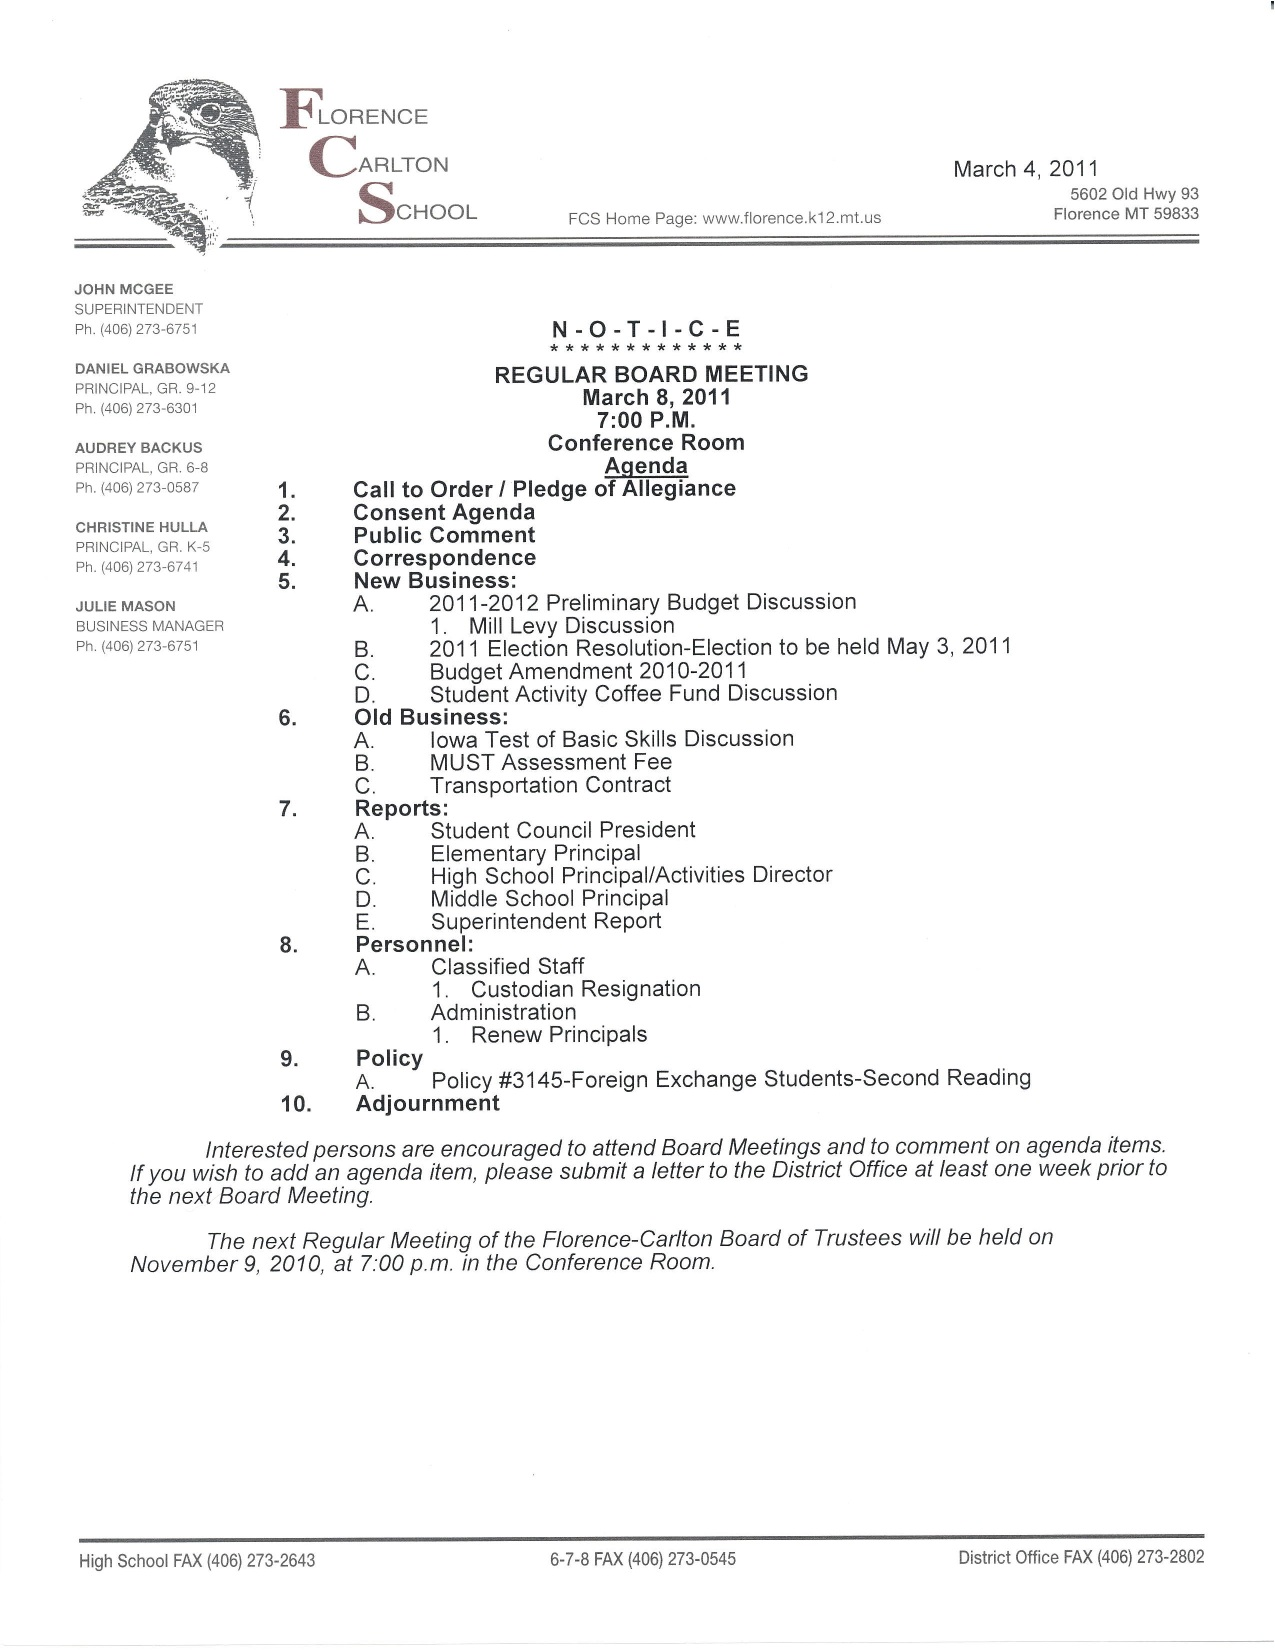 March 8th School Board Meeting Overview Agenda Approved Minutes – Board Meeting Agendas